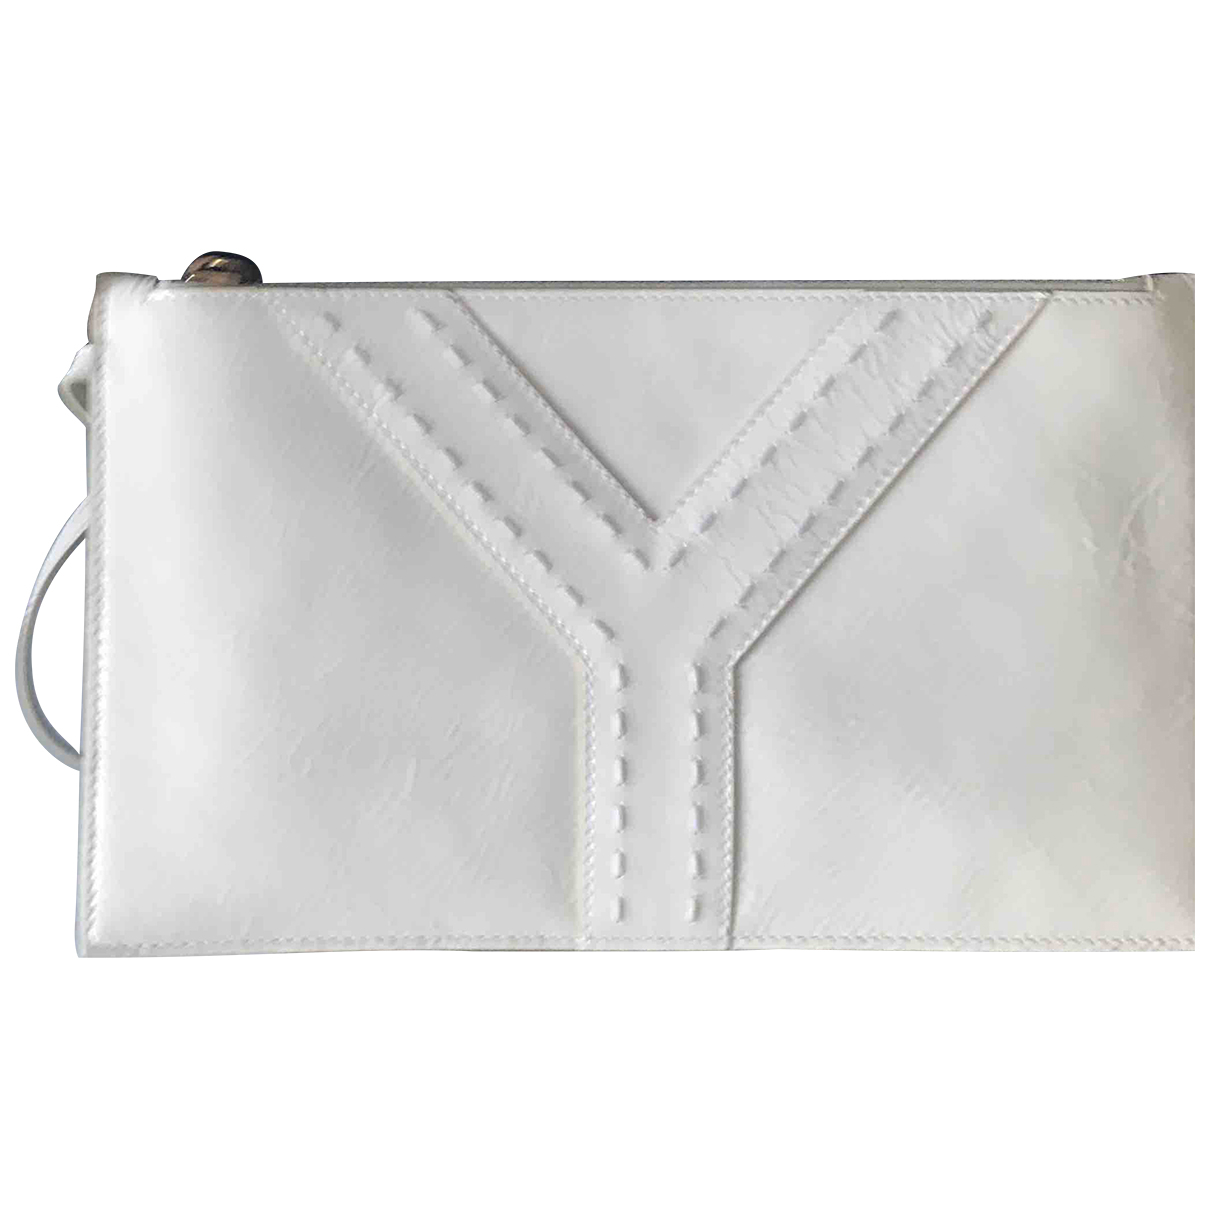 Yves Saint Laurent Muse Clutch in  Weiss Lackleder